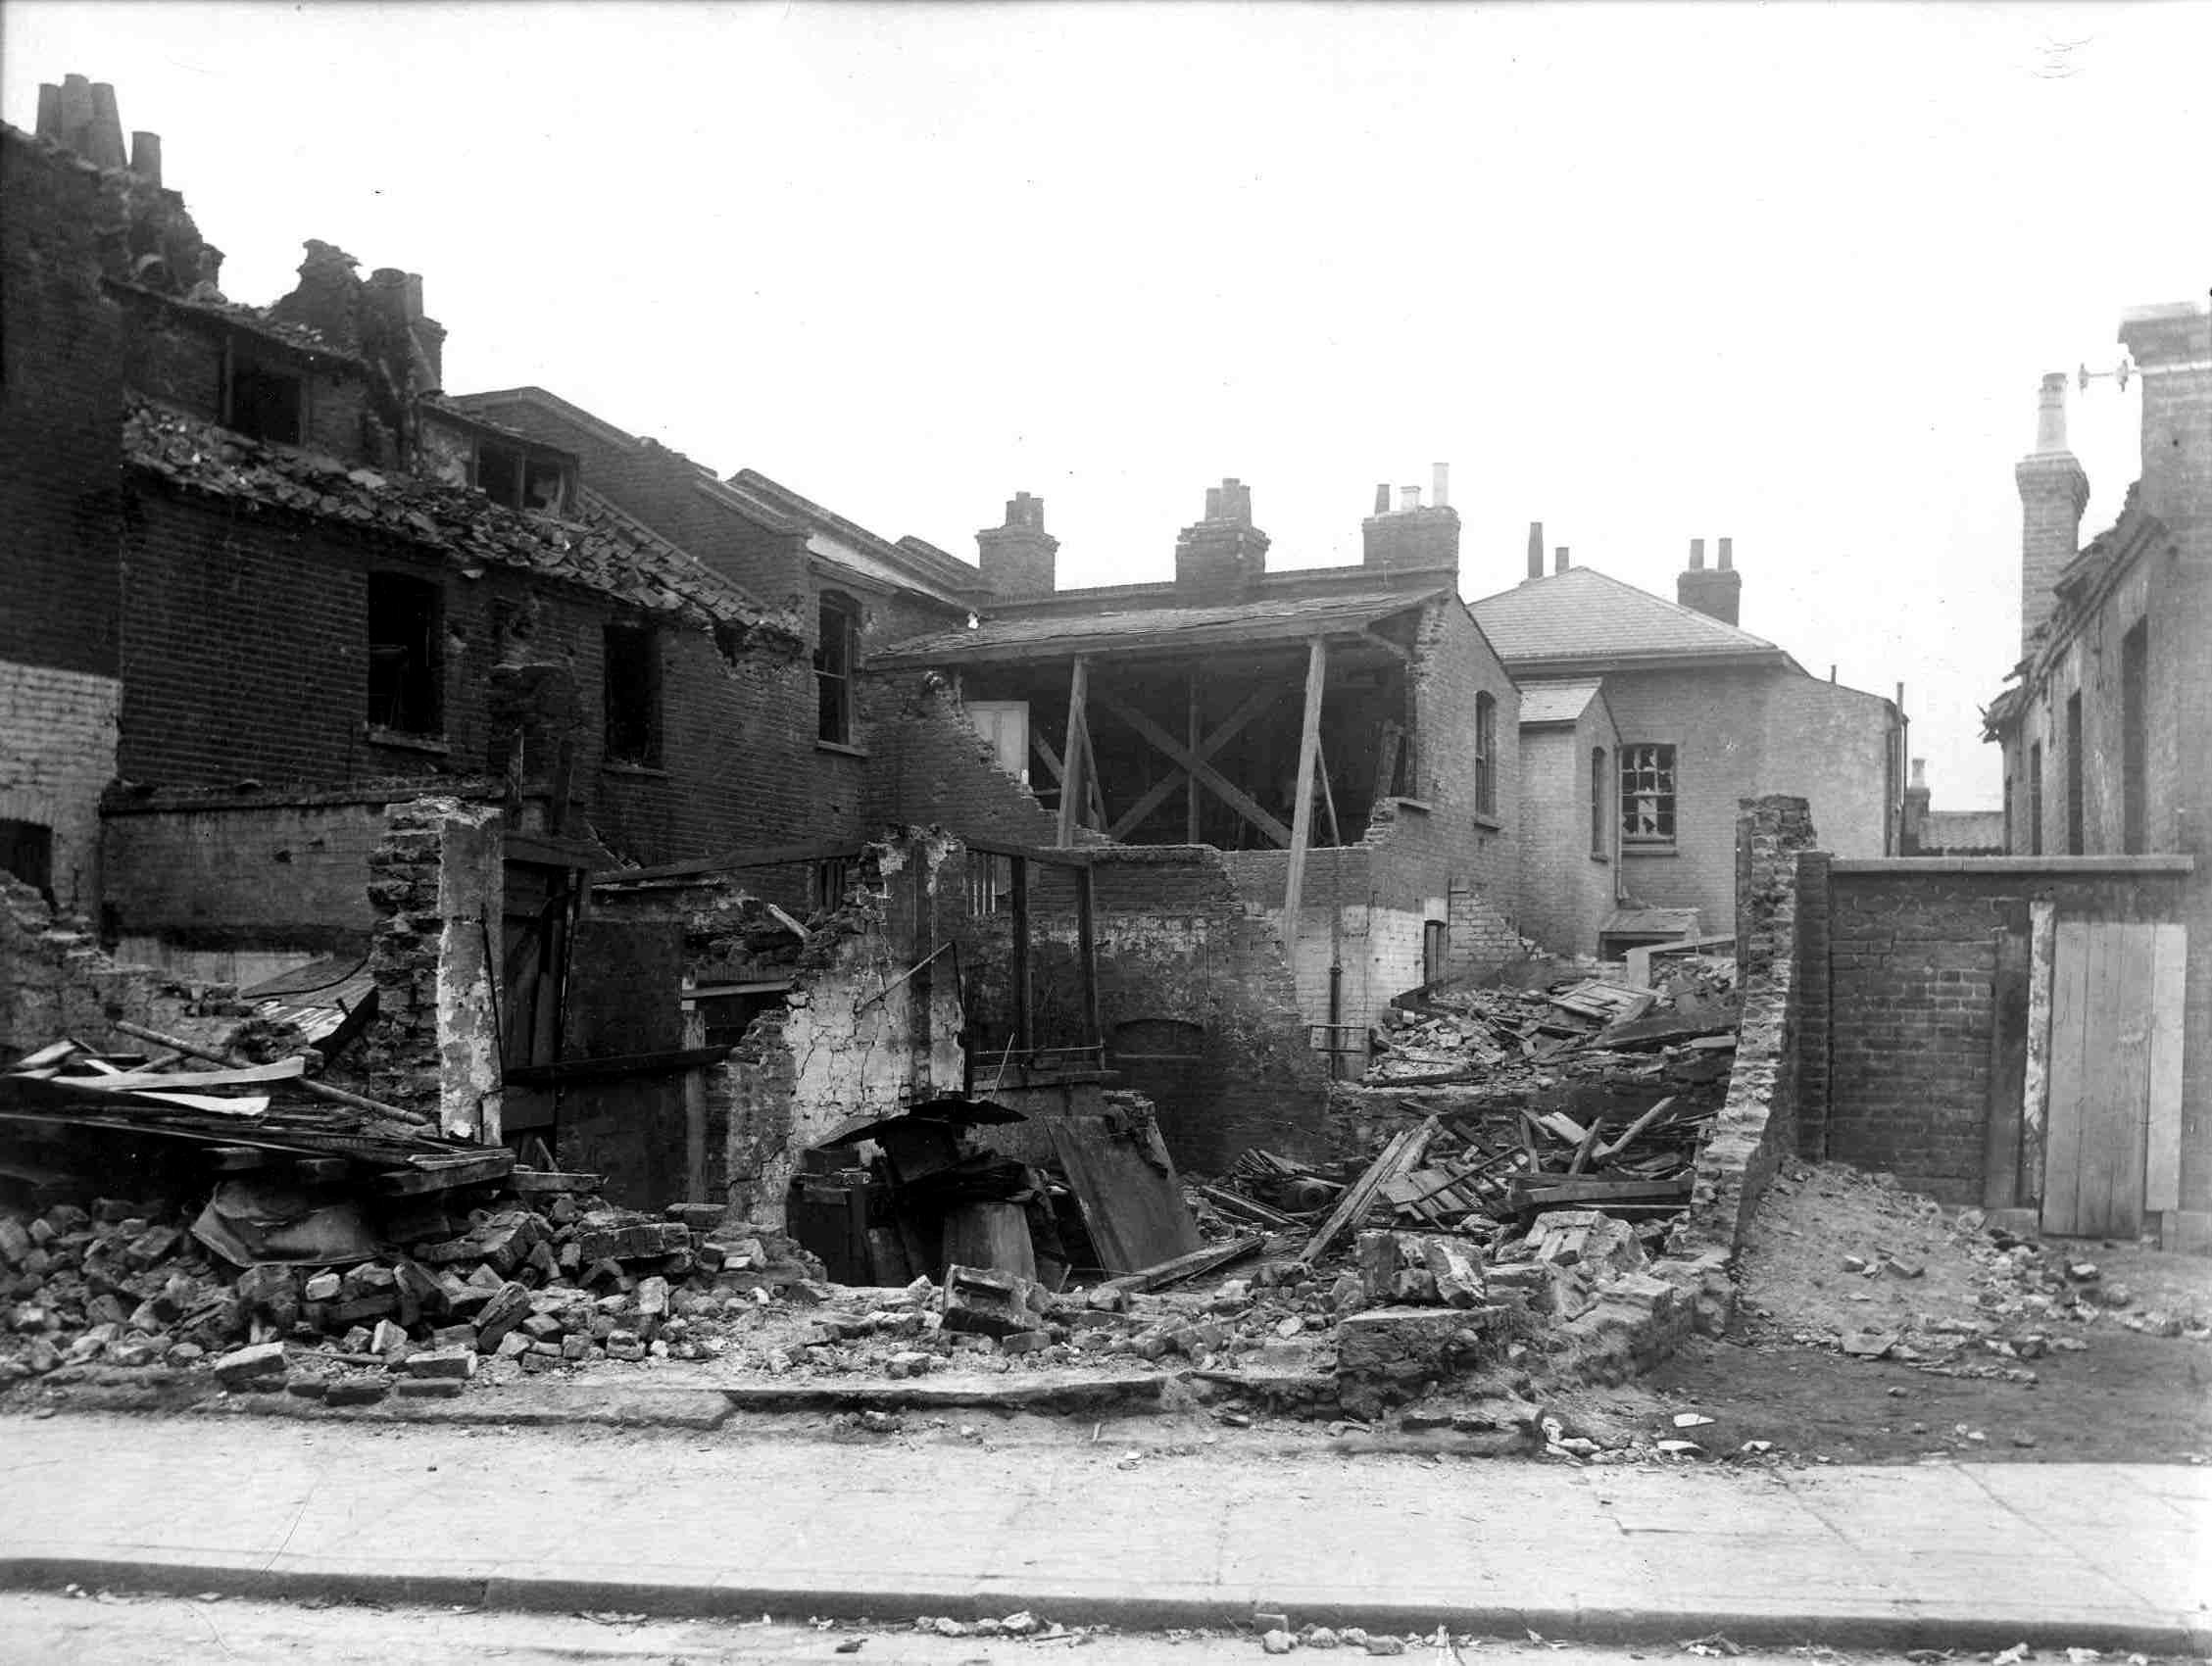 Zeppelin air raid damage to houses in Botolph Road, Bow, 23 September 1916